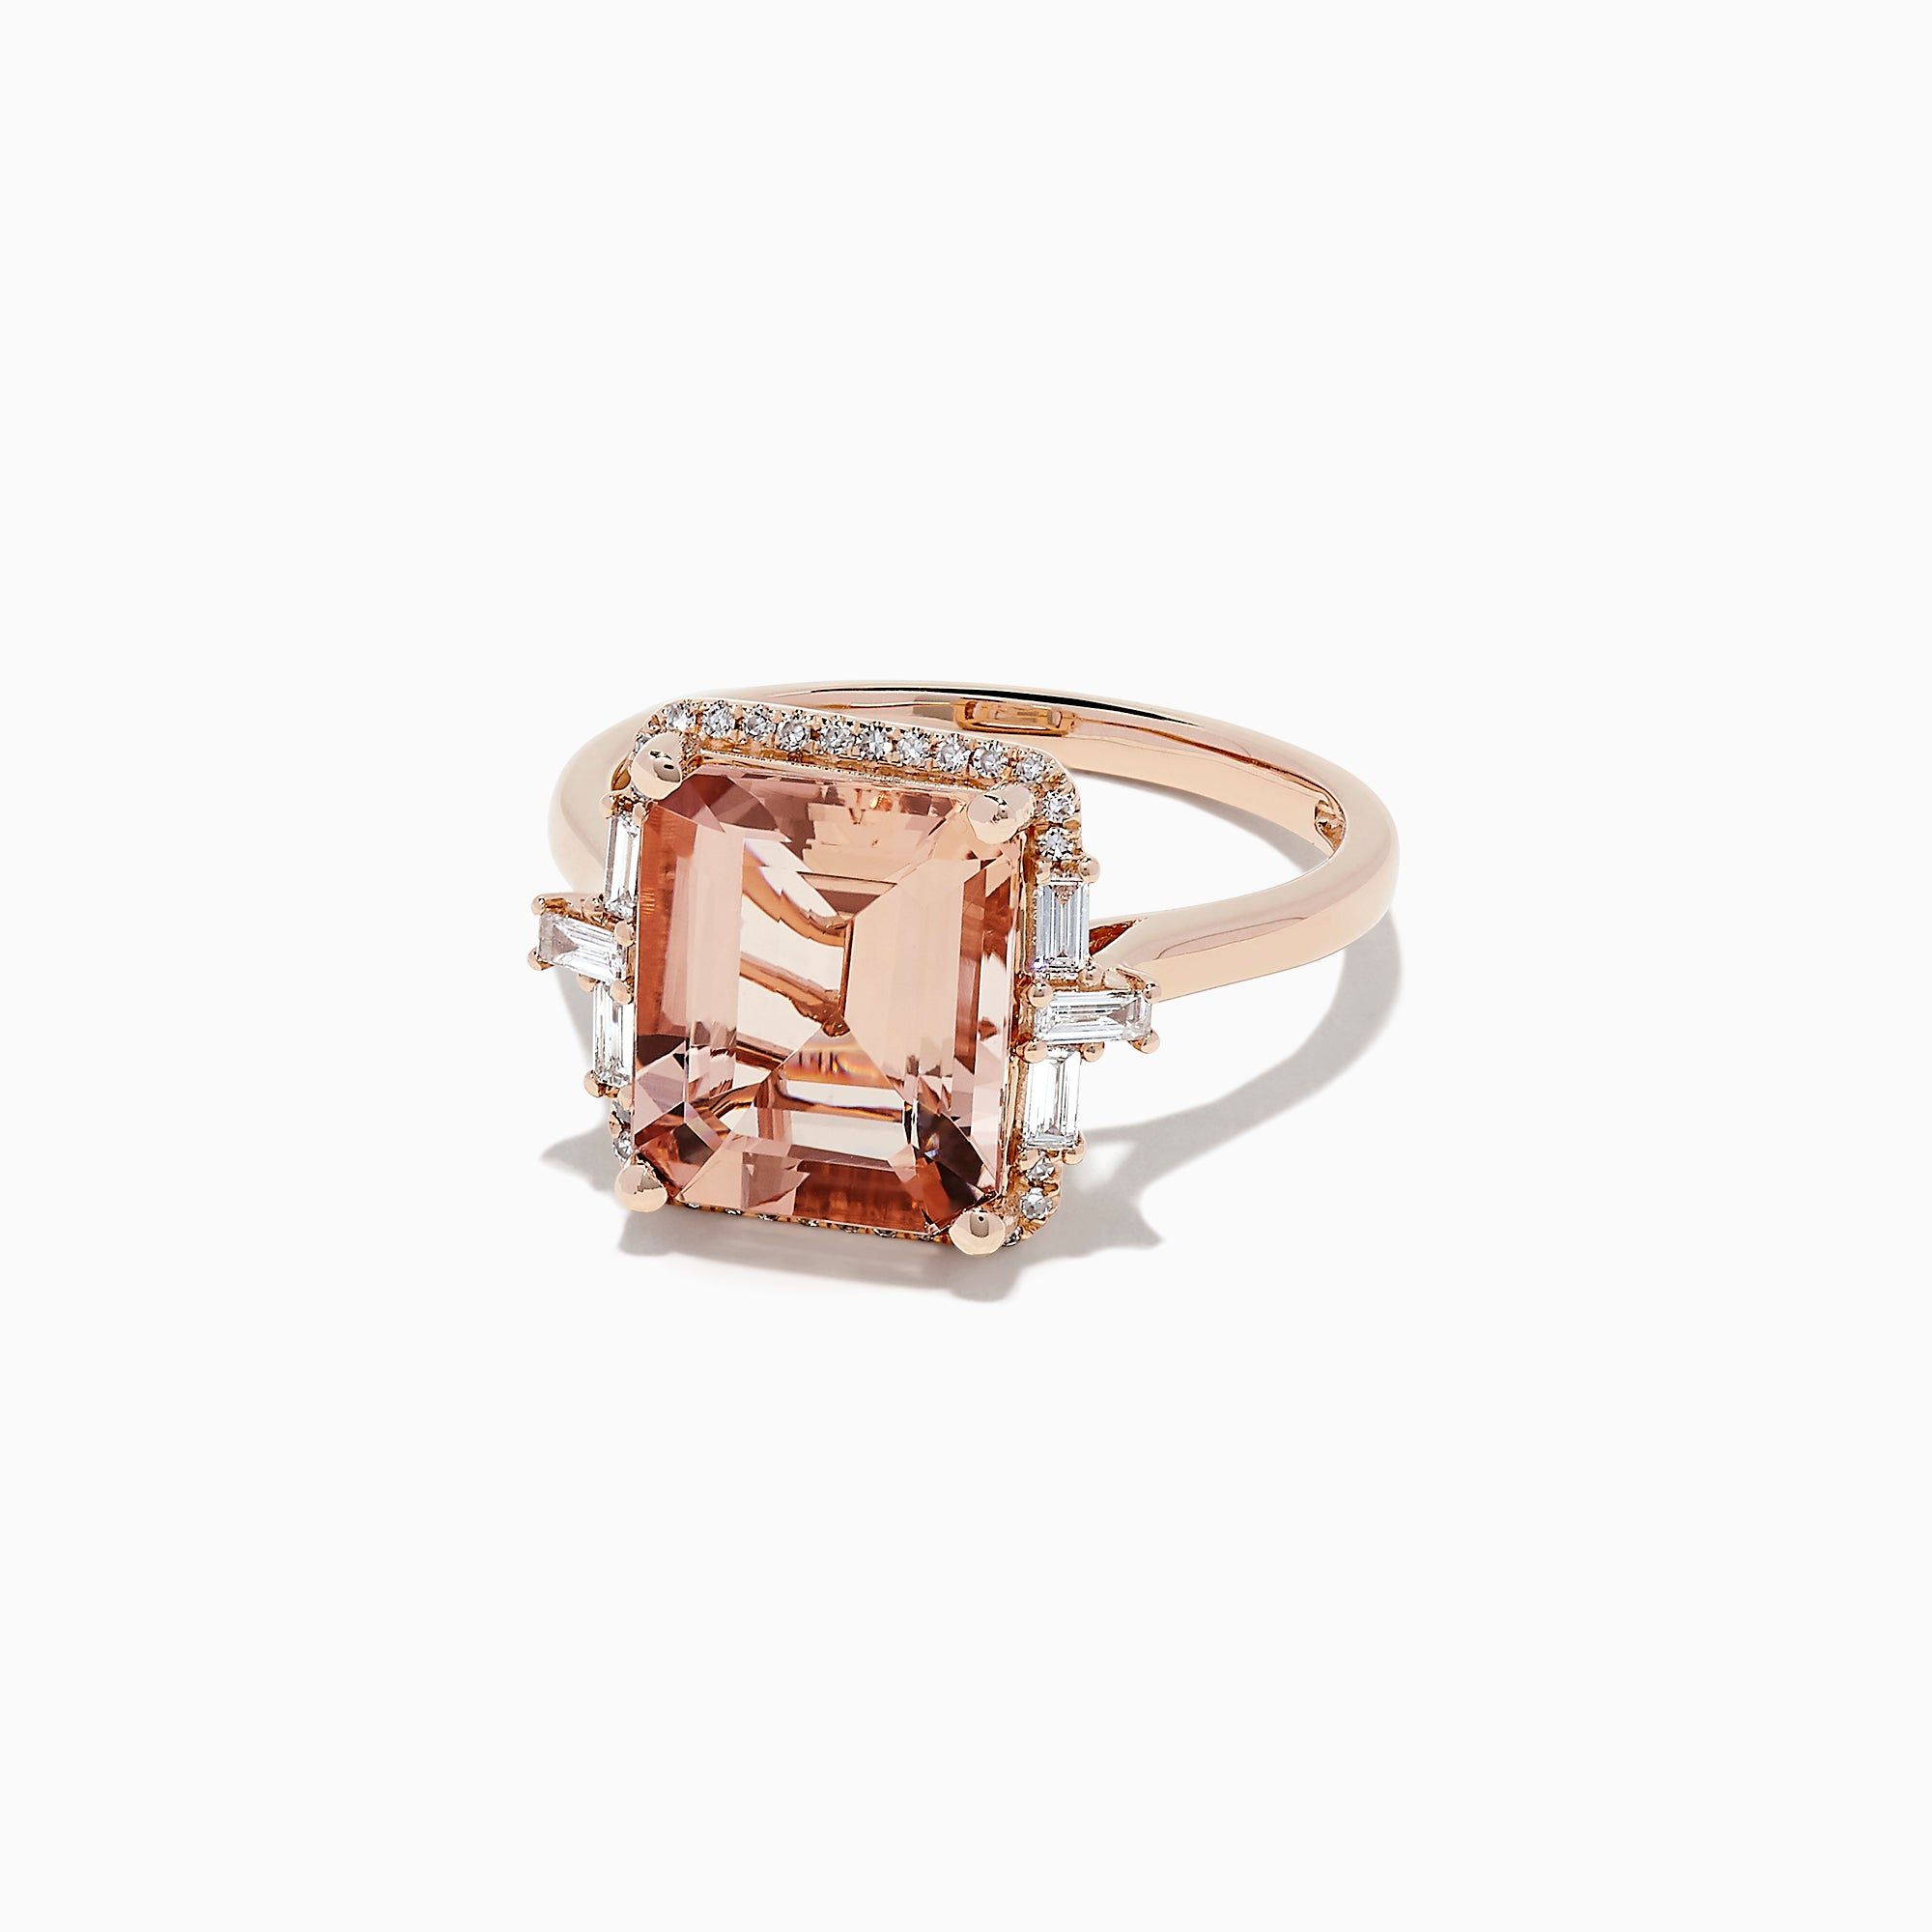 Effy Blush 14K Rose Gold Morganite and Diamond Cocktail Ring, 4.16 TCW